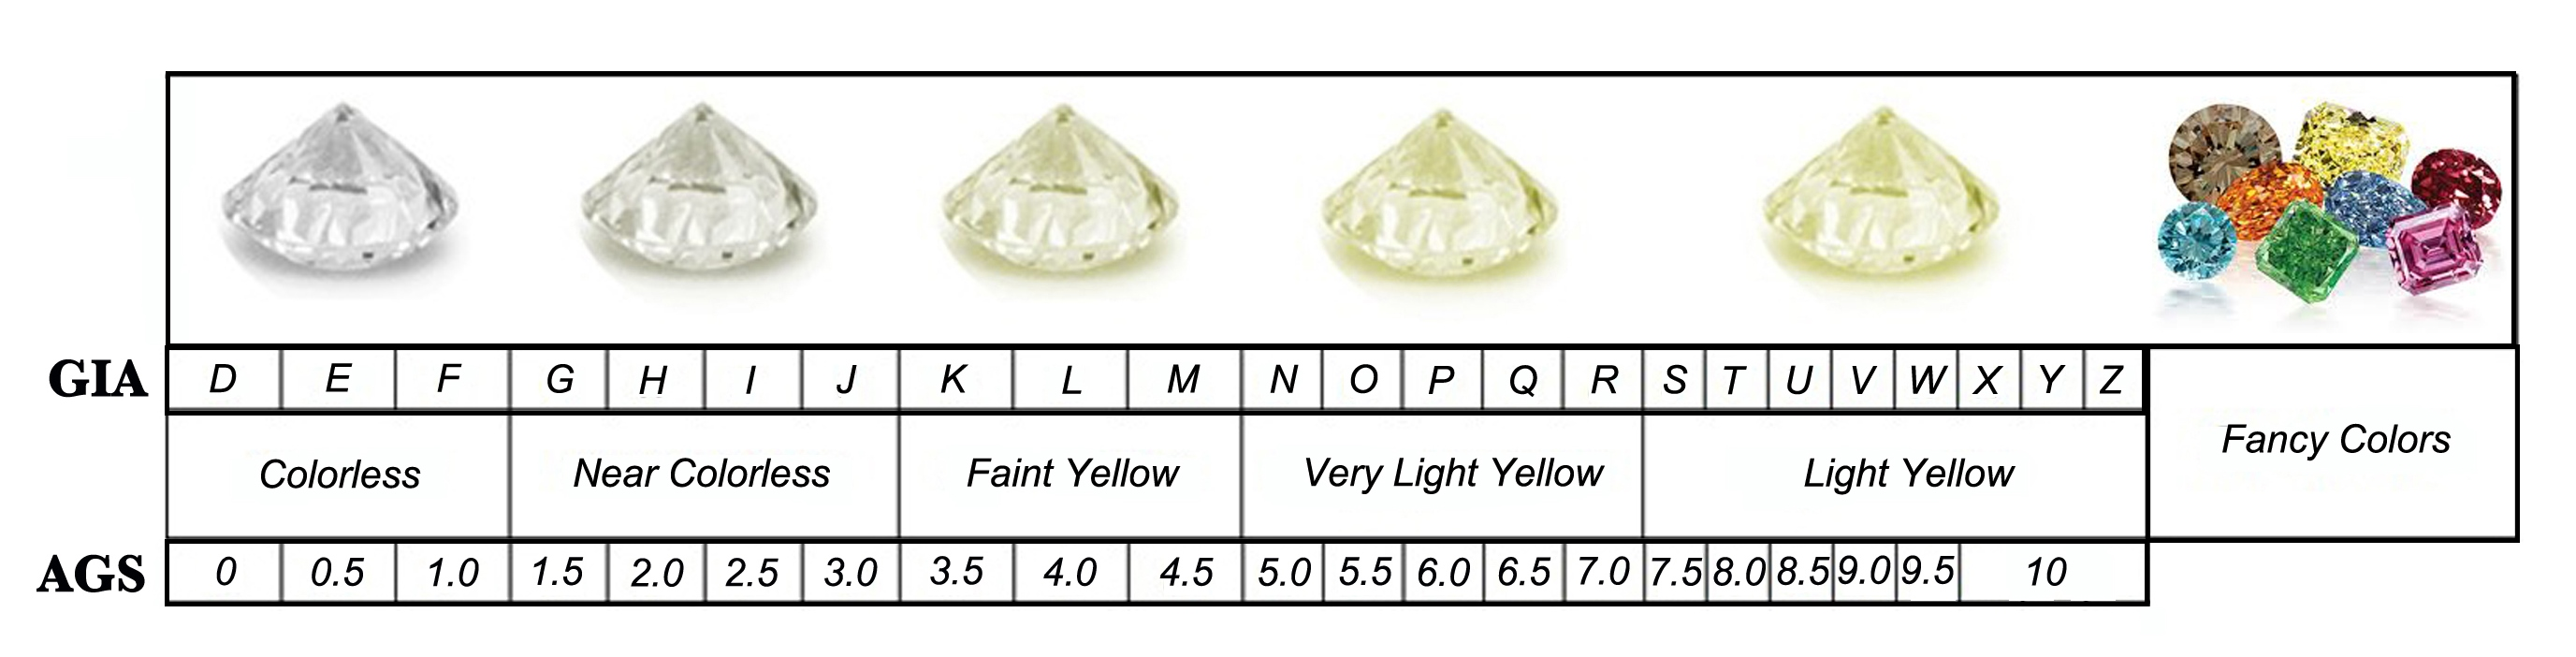 comparisons grades of youtube clarity watch chart diamond